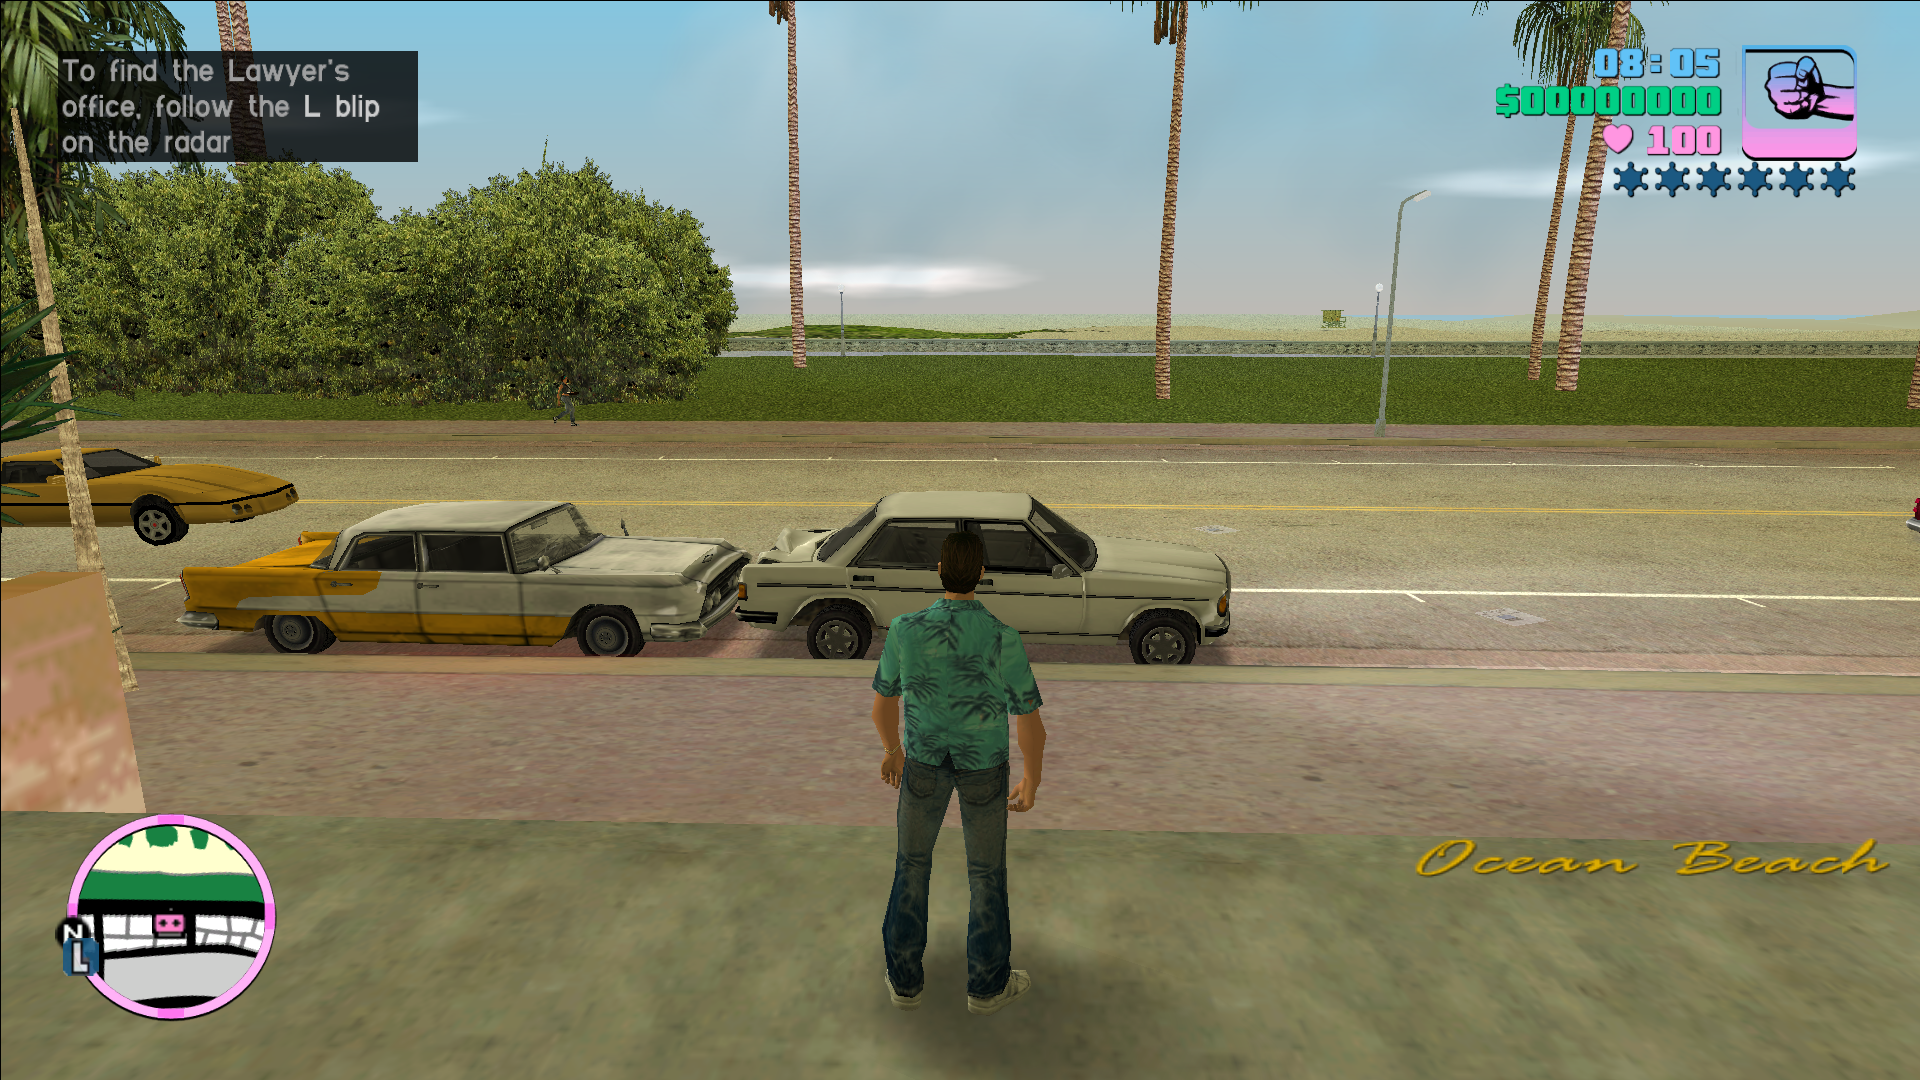 Grand Theft Auto: Vice City 10 Year Anniversary PC Edition mod - Mod DB